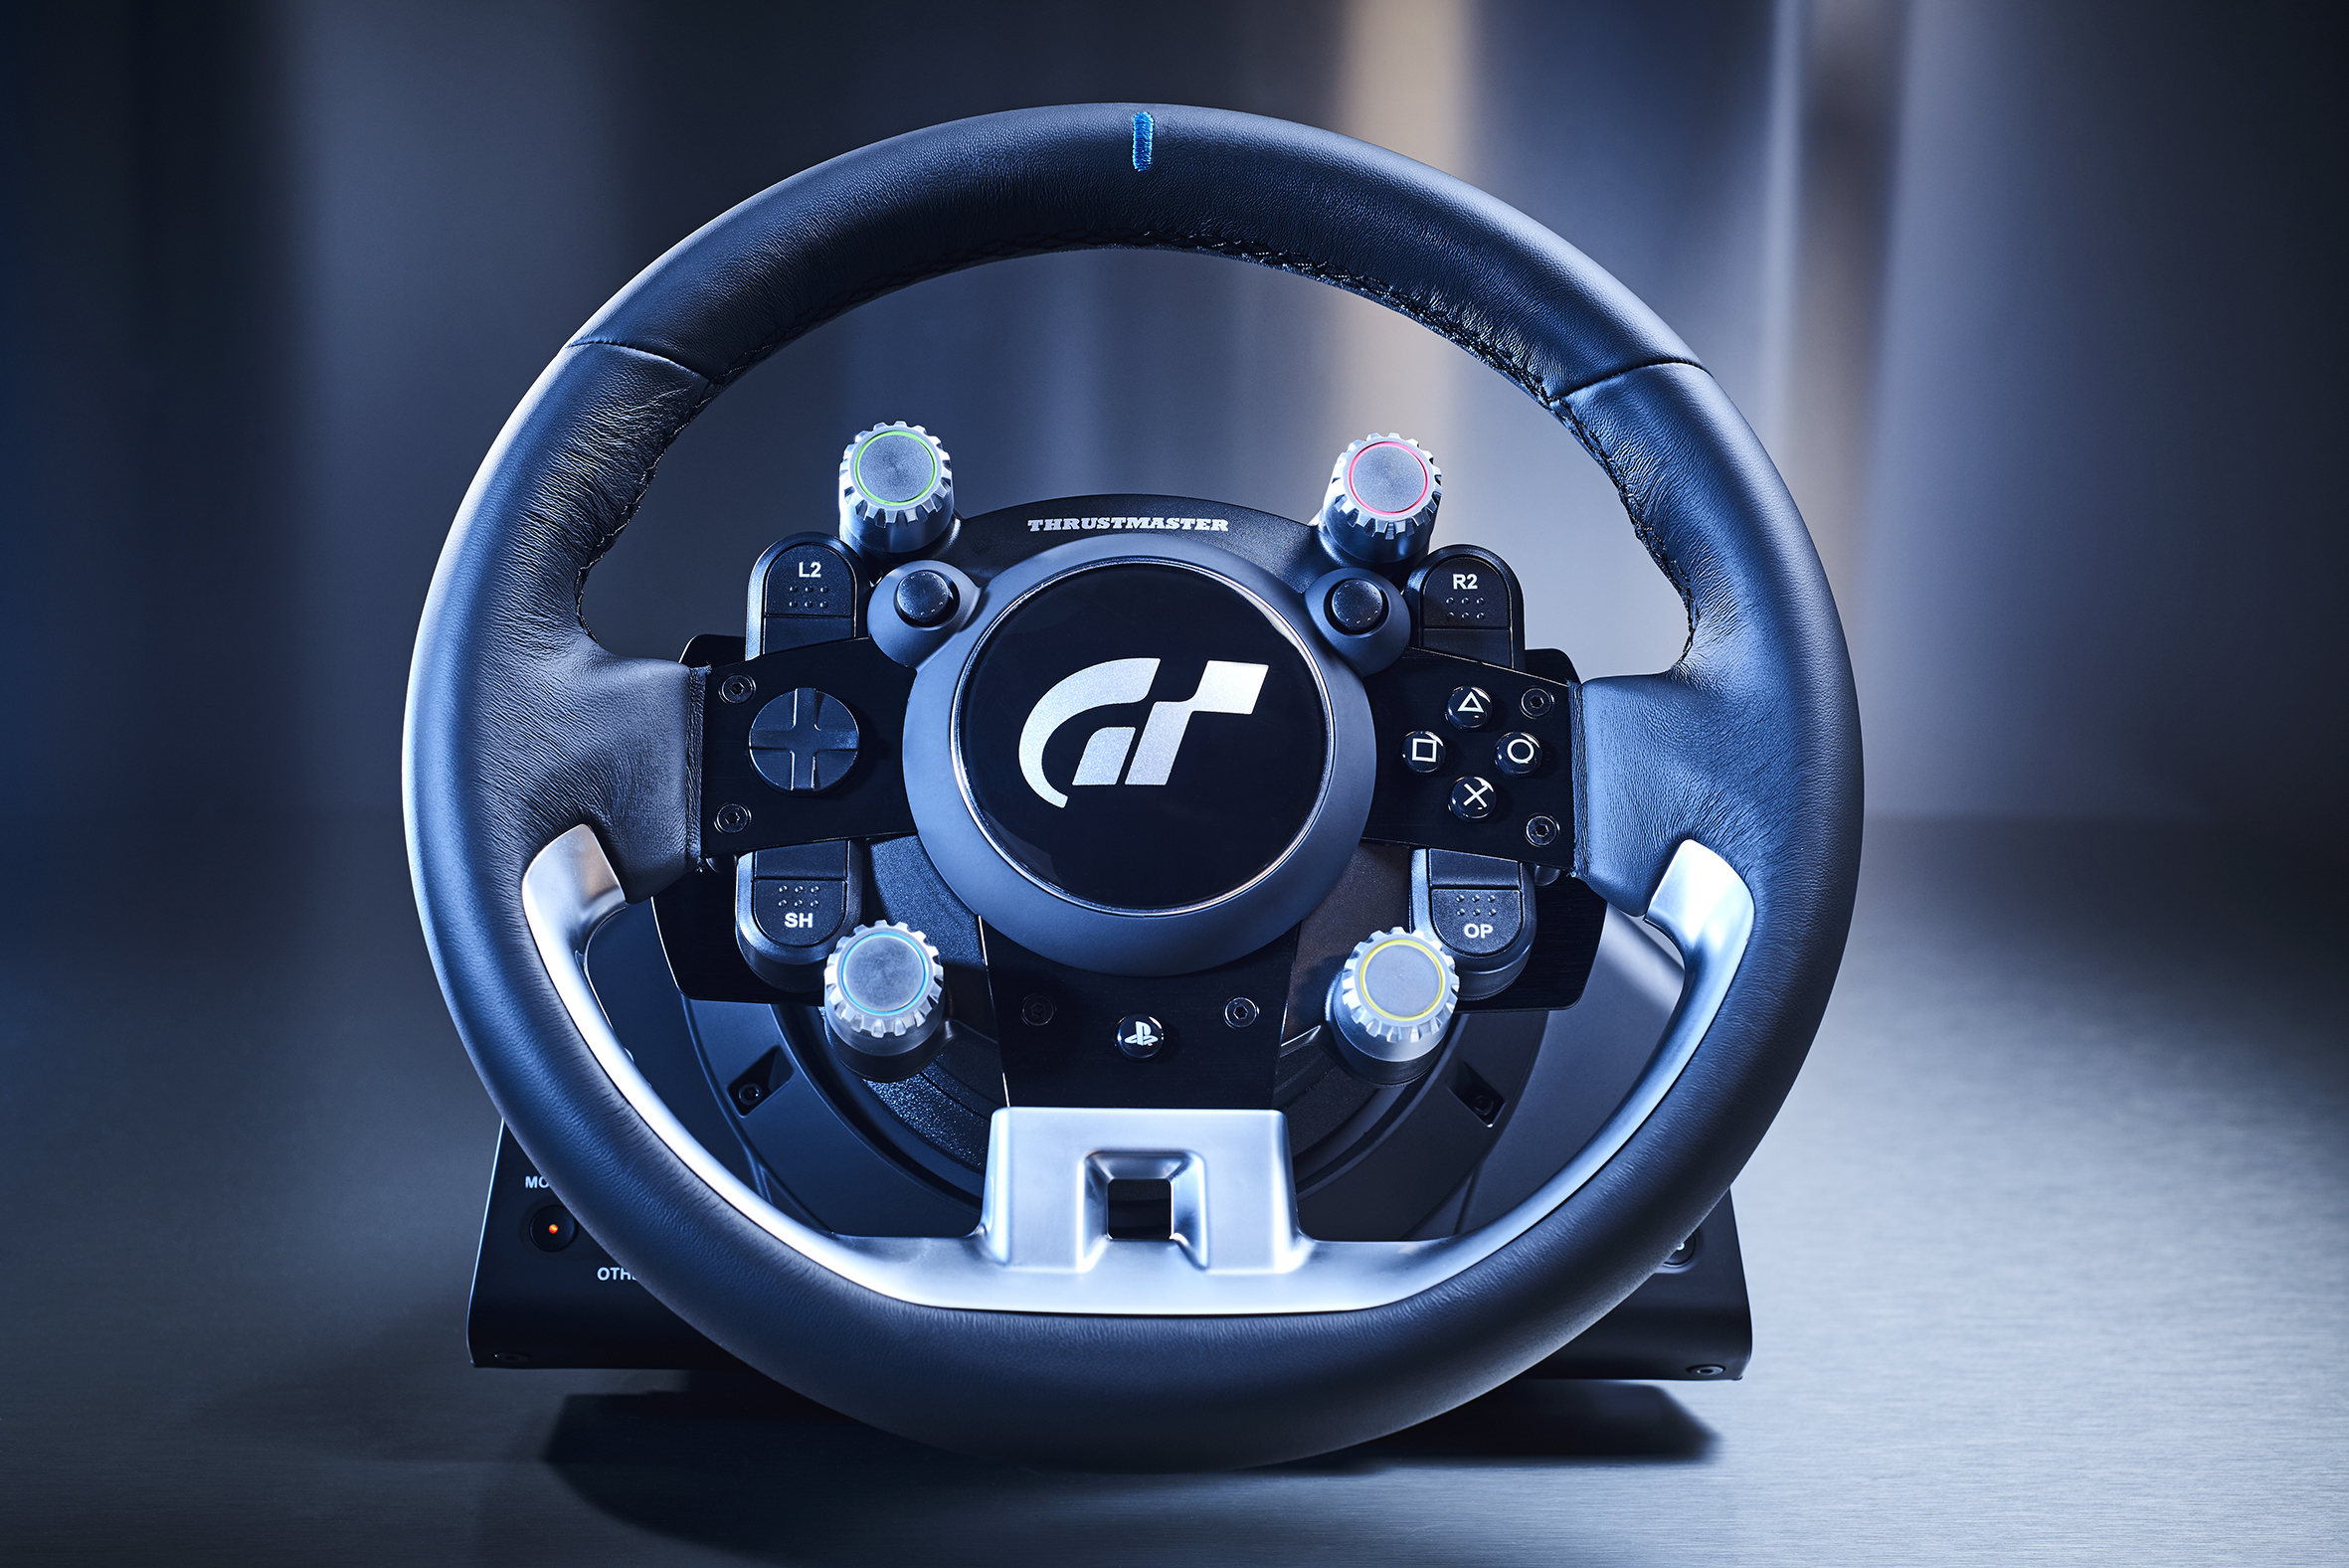 Thrustmaster T-GT racing wheel revealed in full at E3 2017